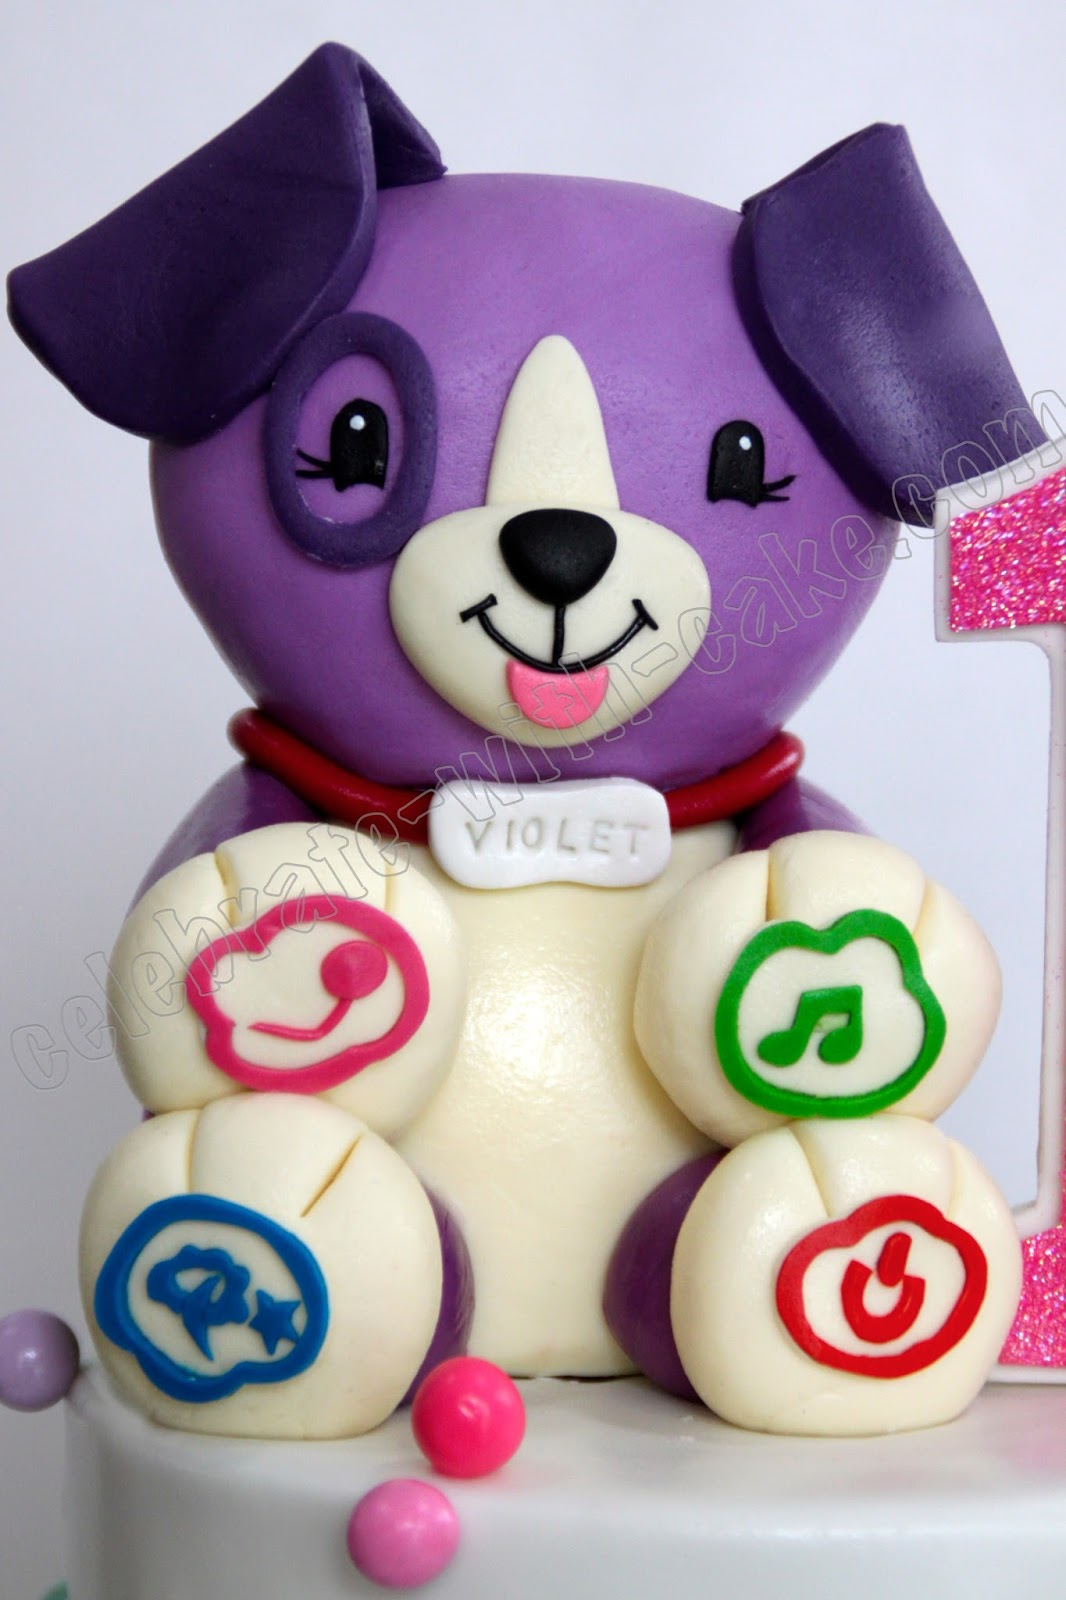 Celebrate With Cake Melting Tiers Effect With Violet Leapfrog